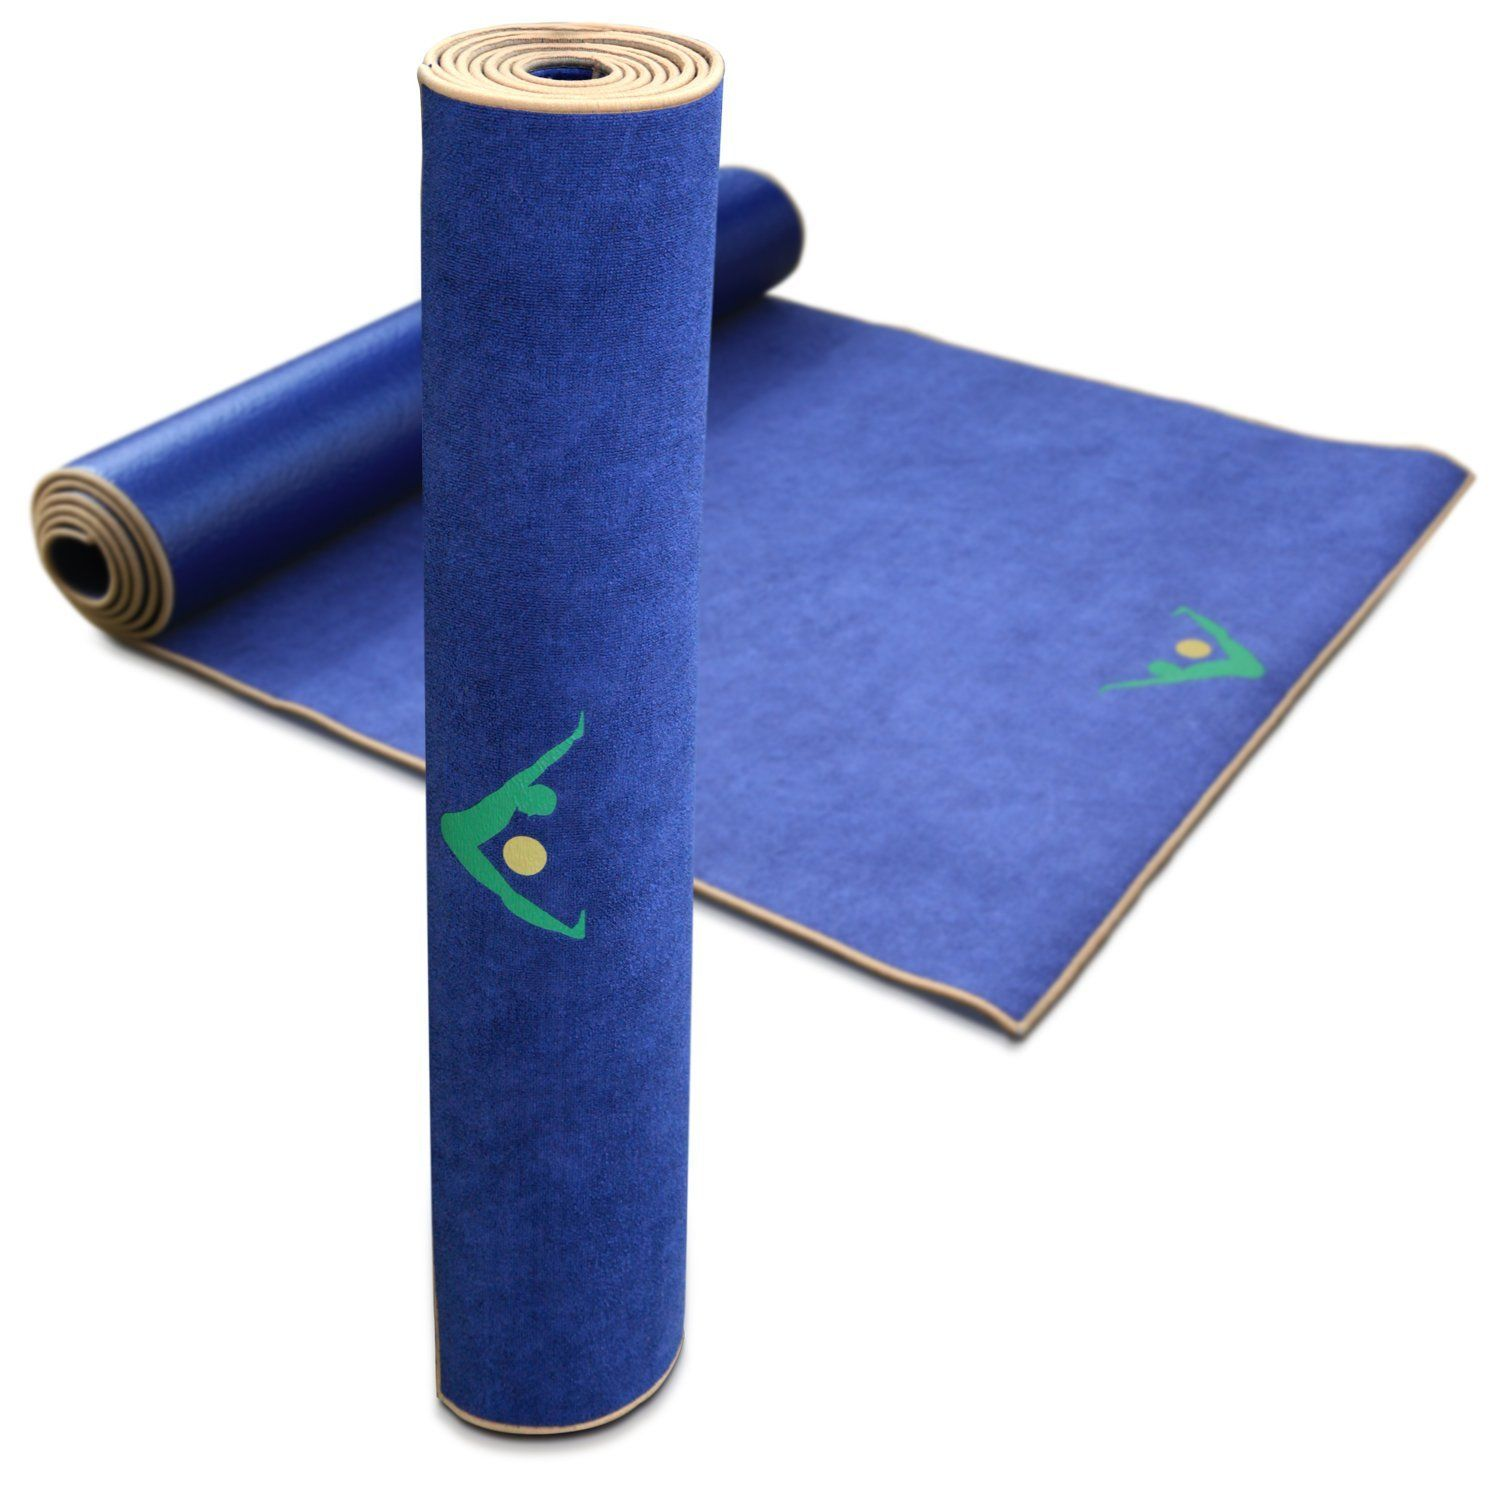 ecoyoga mat offering without they a because and grooming best the price higher come always rep eco at not often products friendly least reviews to mats function don health t superior buy from expert yoga get